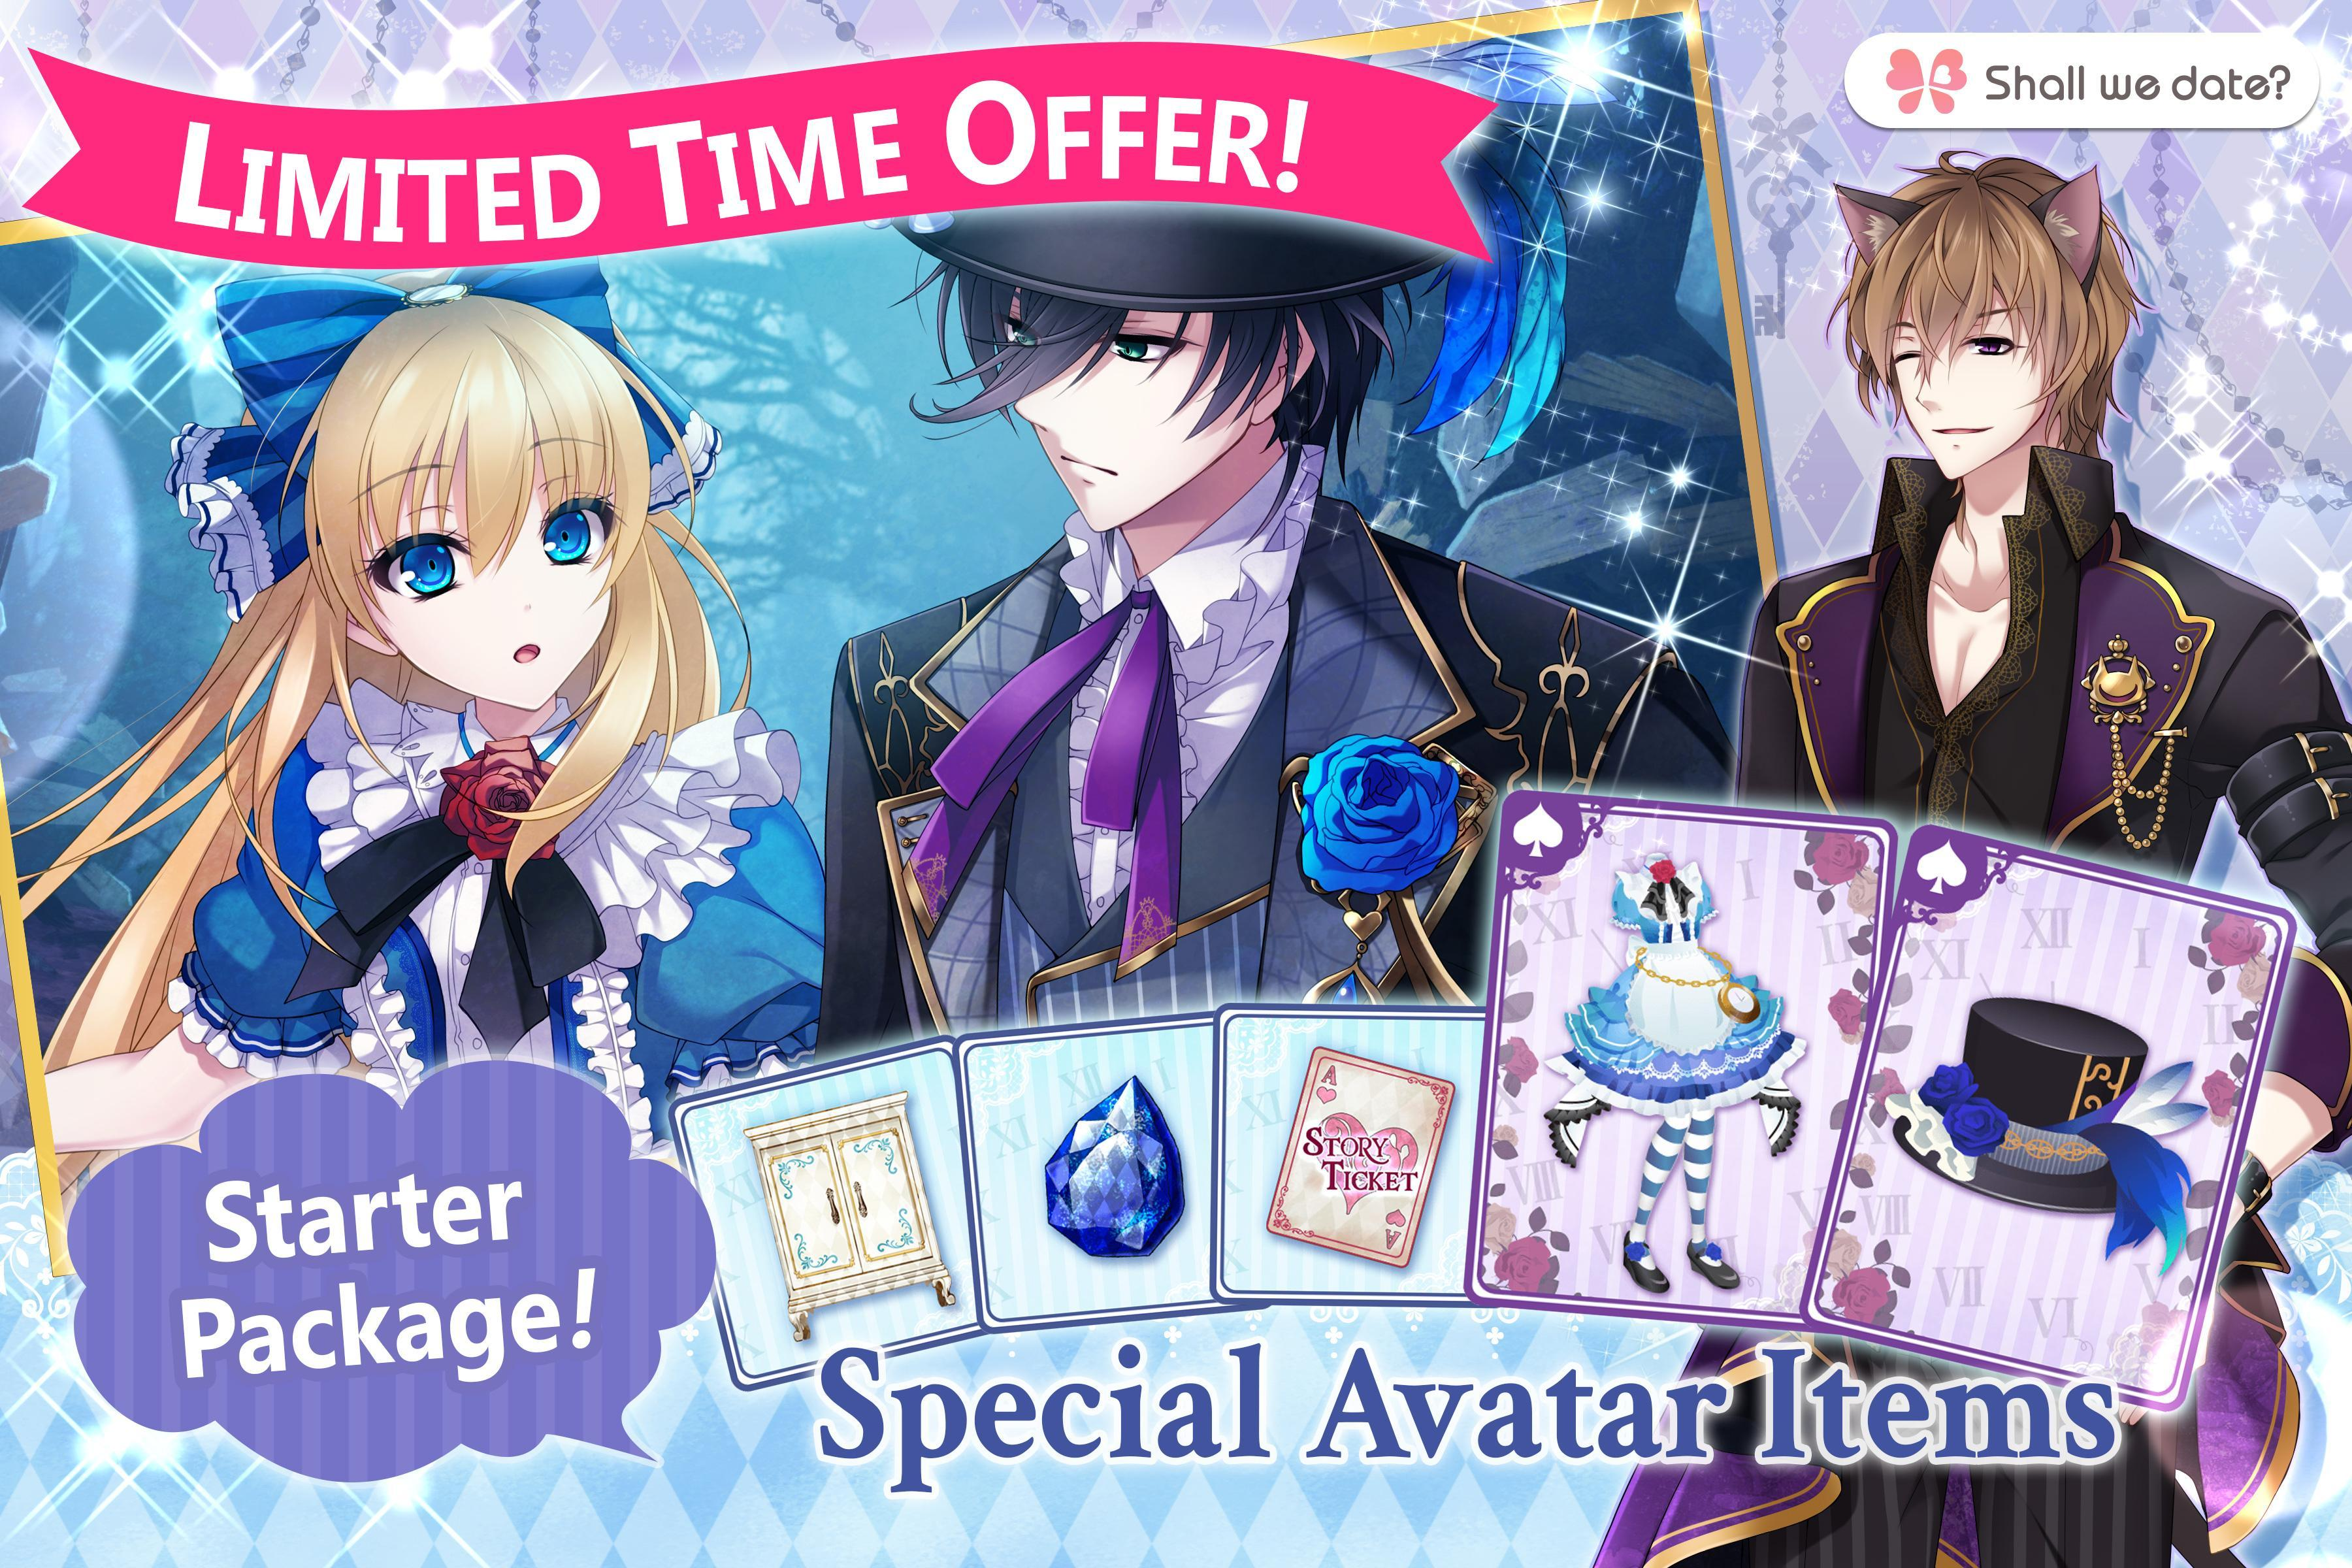 Lost Alice - otome game/dating sim #shall we date 1.5.1 Screenshot 6